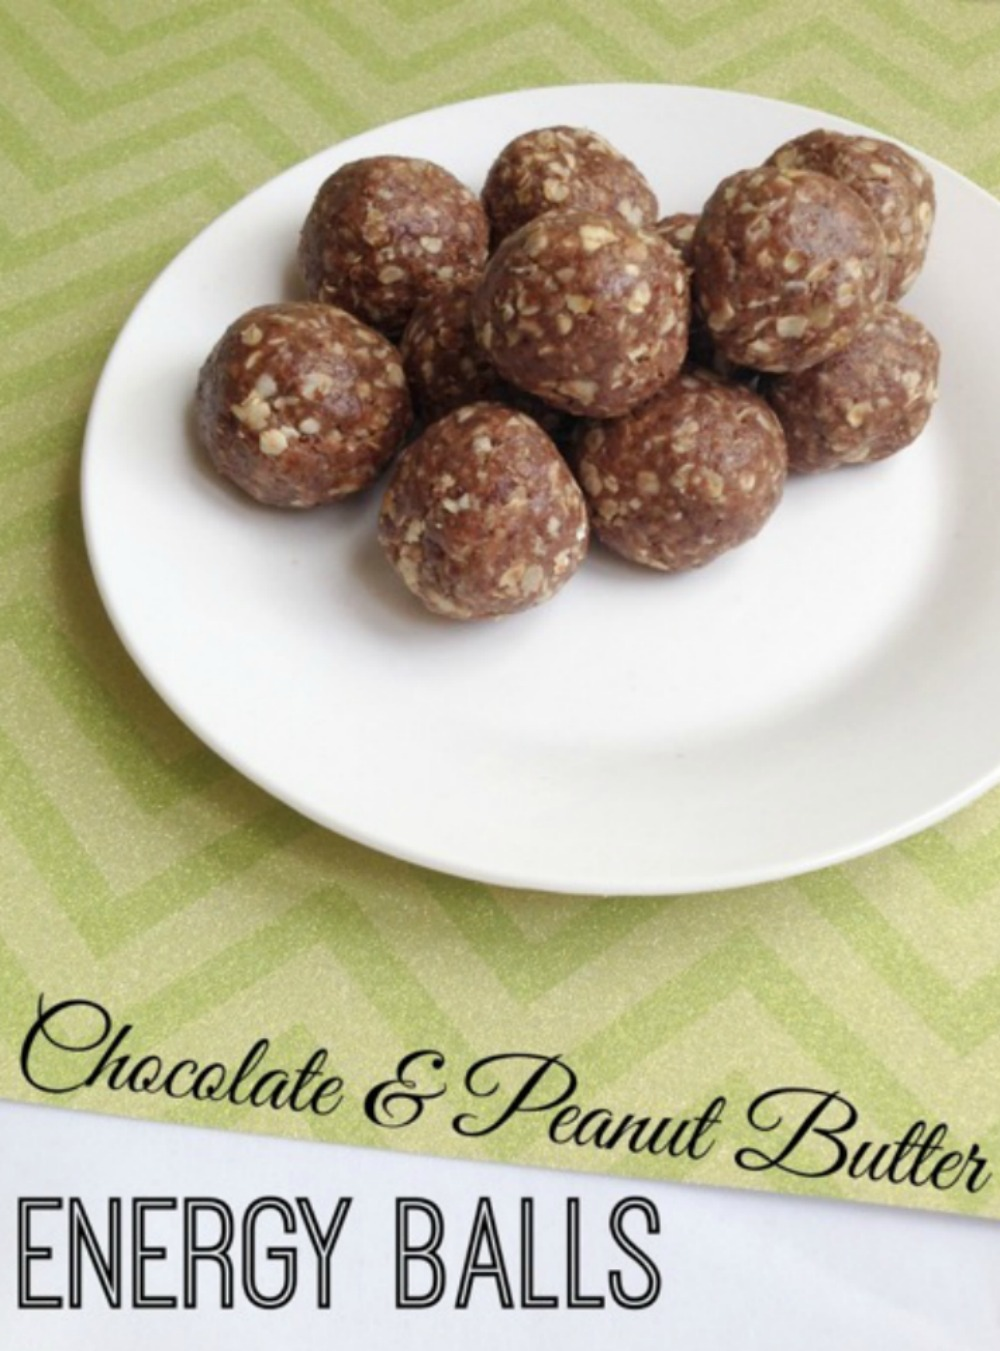 Chocolate and Peanut Butter Energy Balls